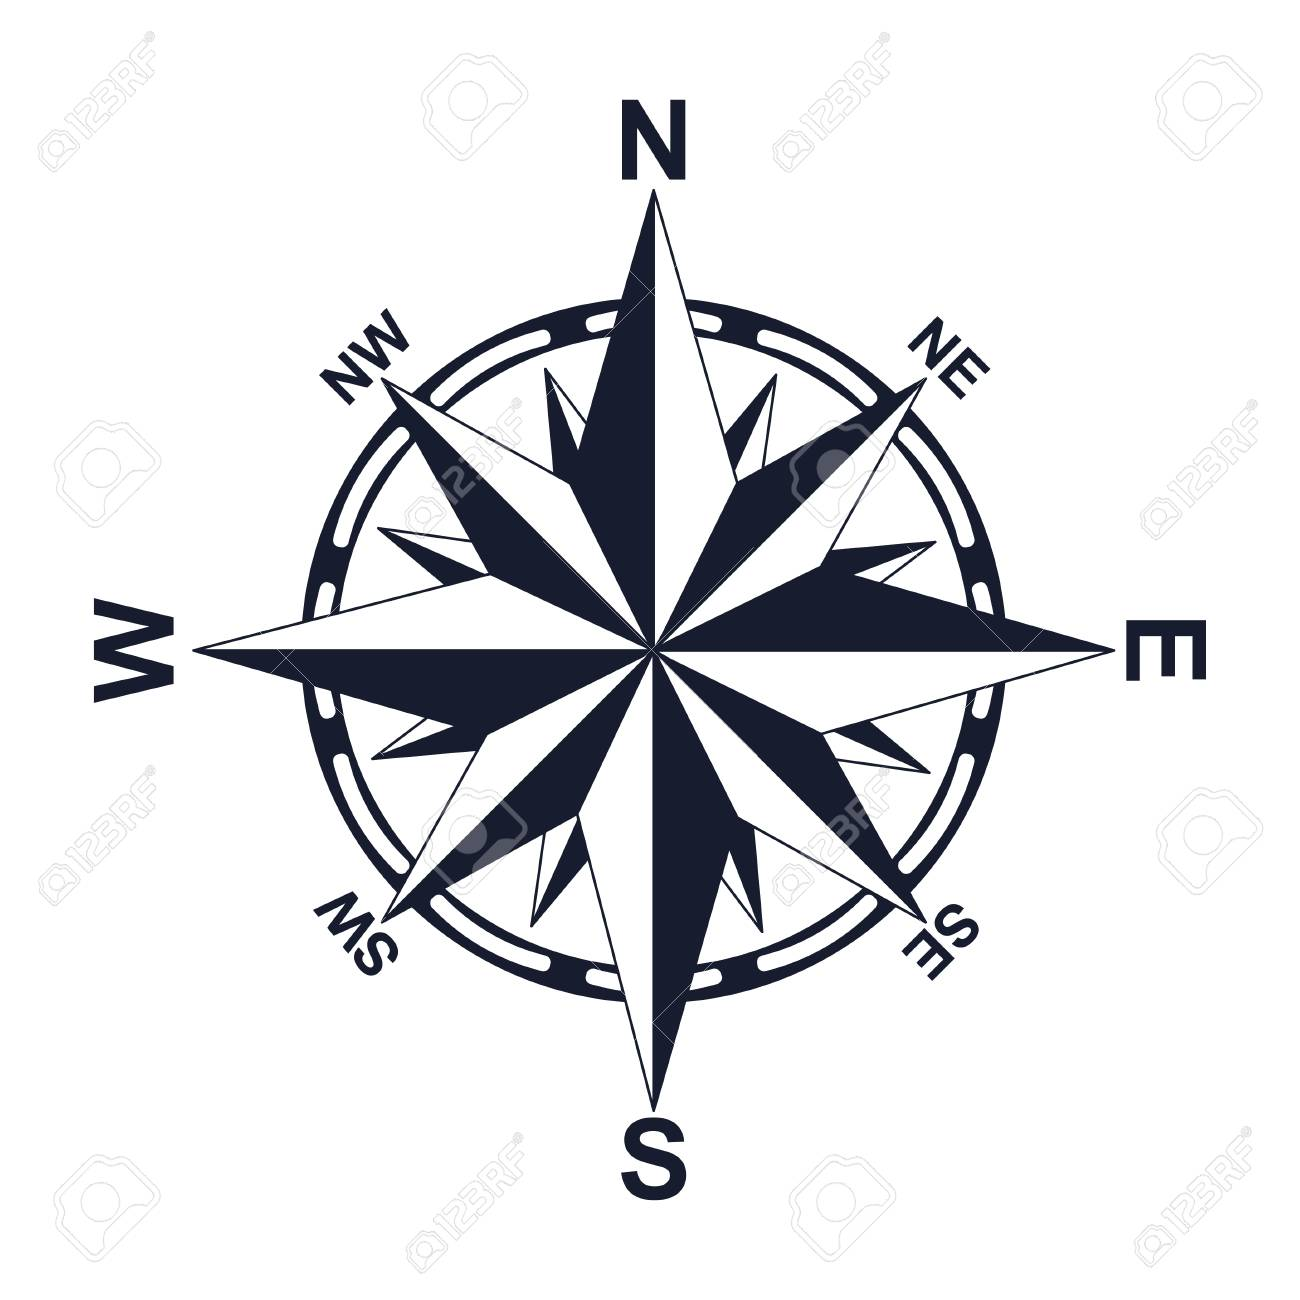 compass direction north west east south for your design icon